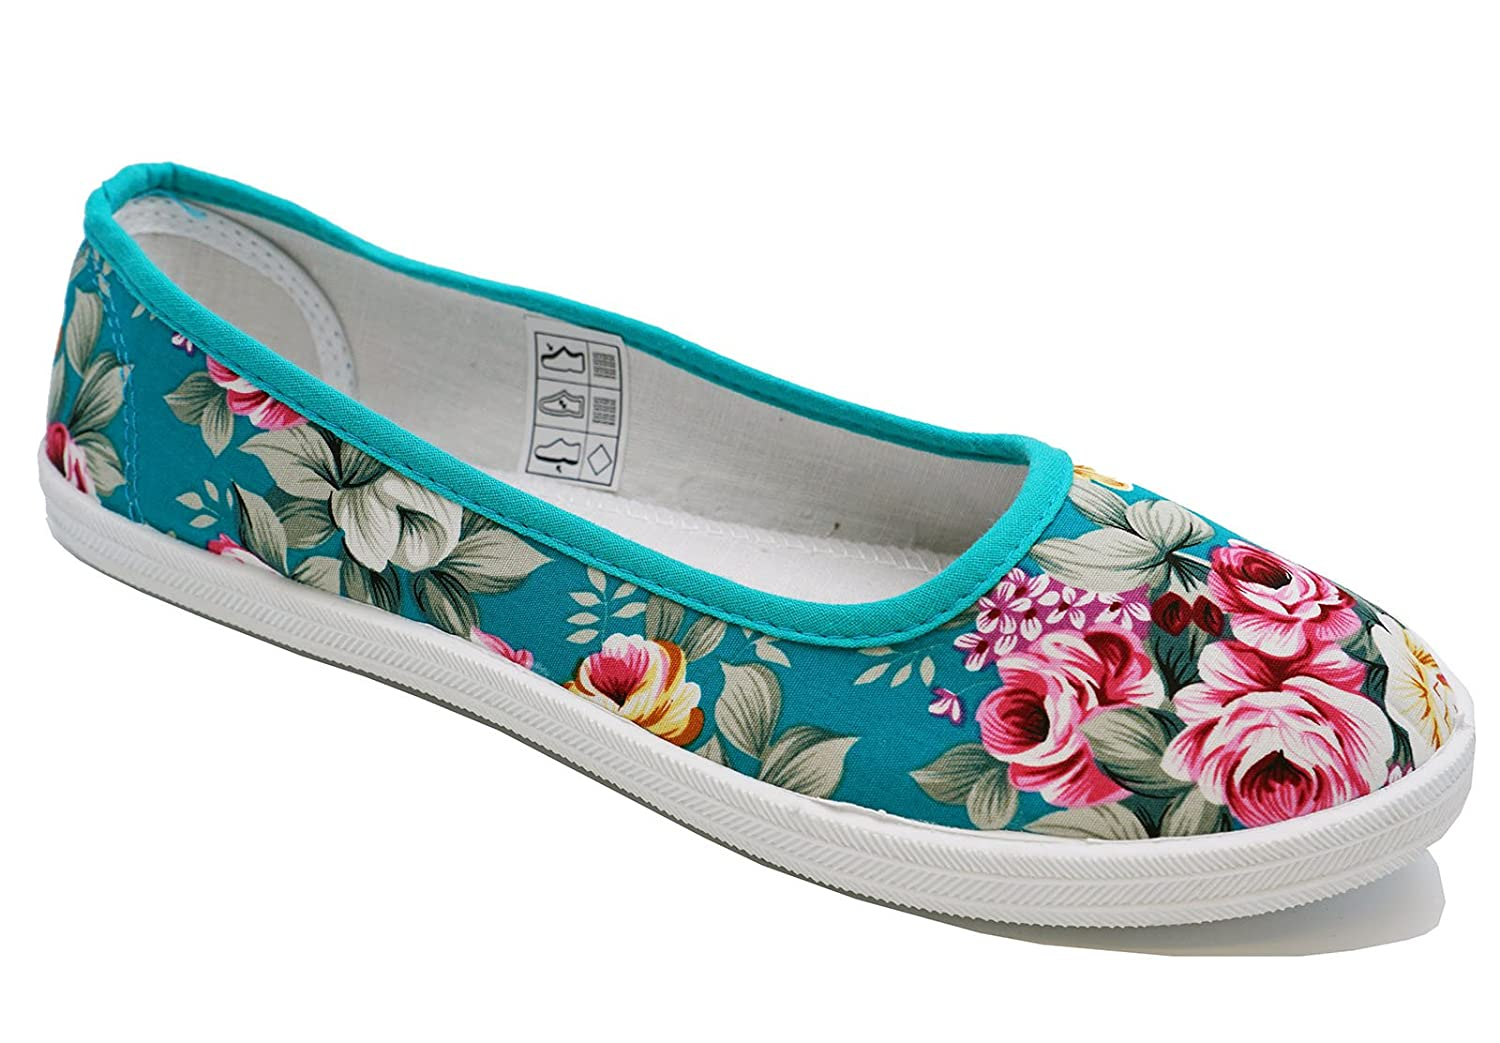 b48bf3151e3 Ladies Green Floral Canvas Flat Slip-On Plimsoll Pumps Casual Shoes Sizes  3-8  Amazon.co.uk  Shoes   Bags